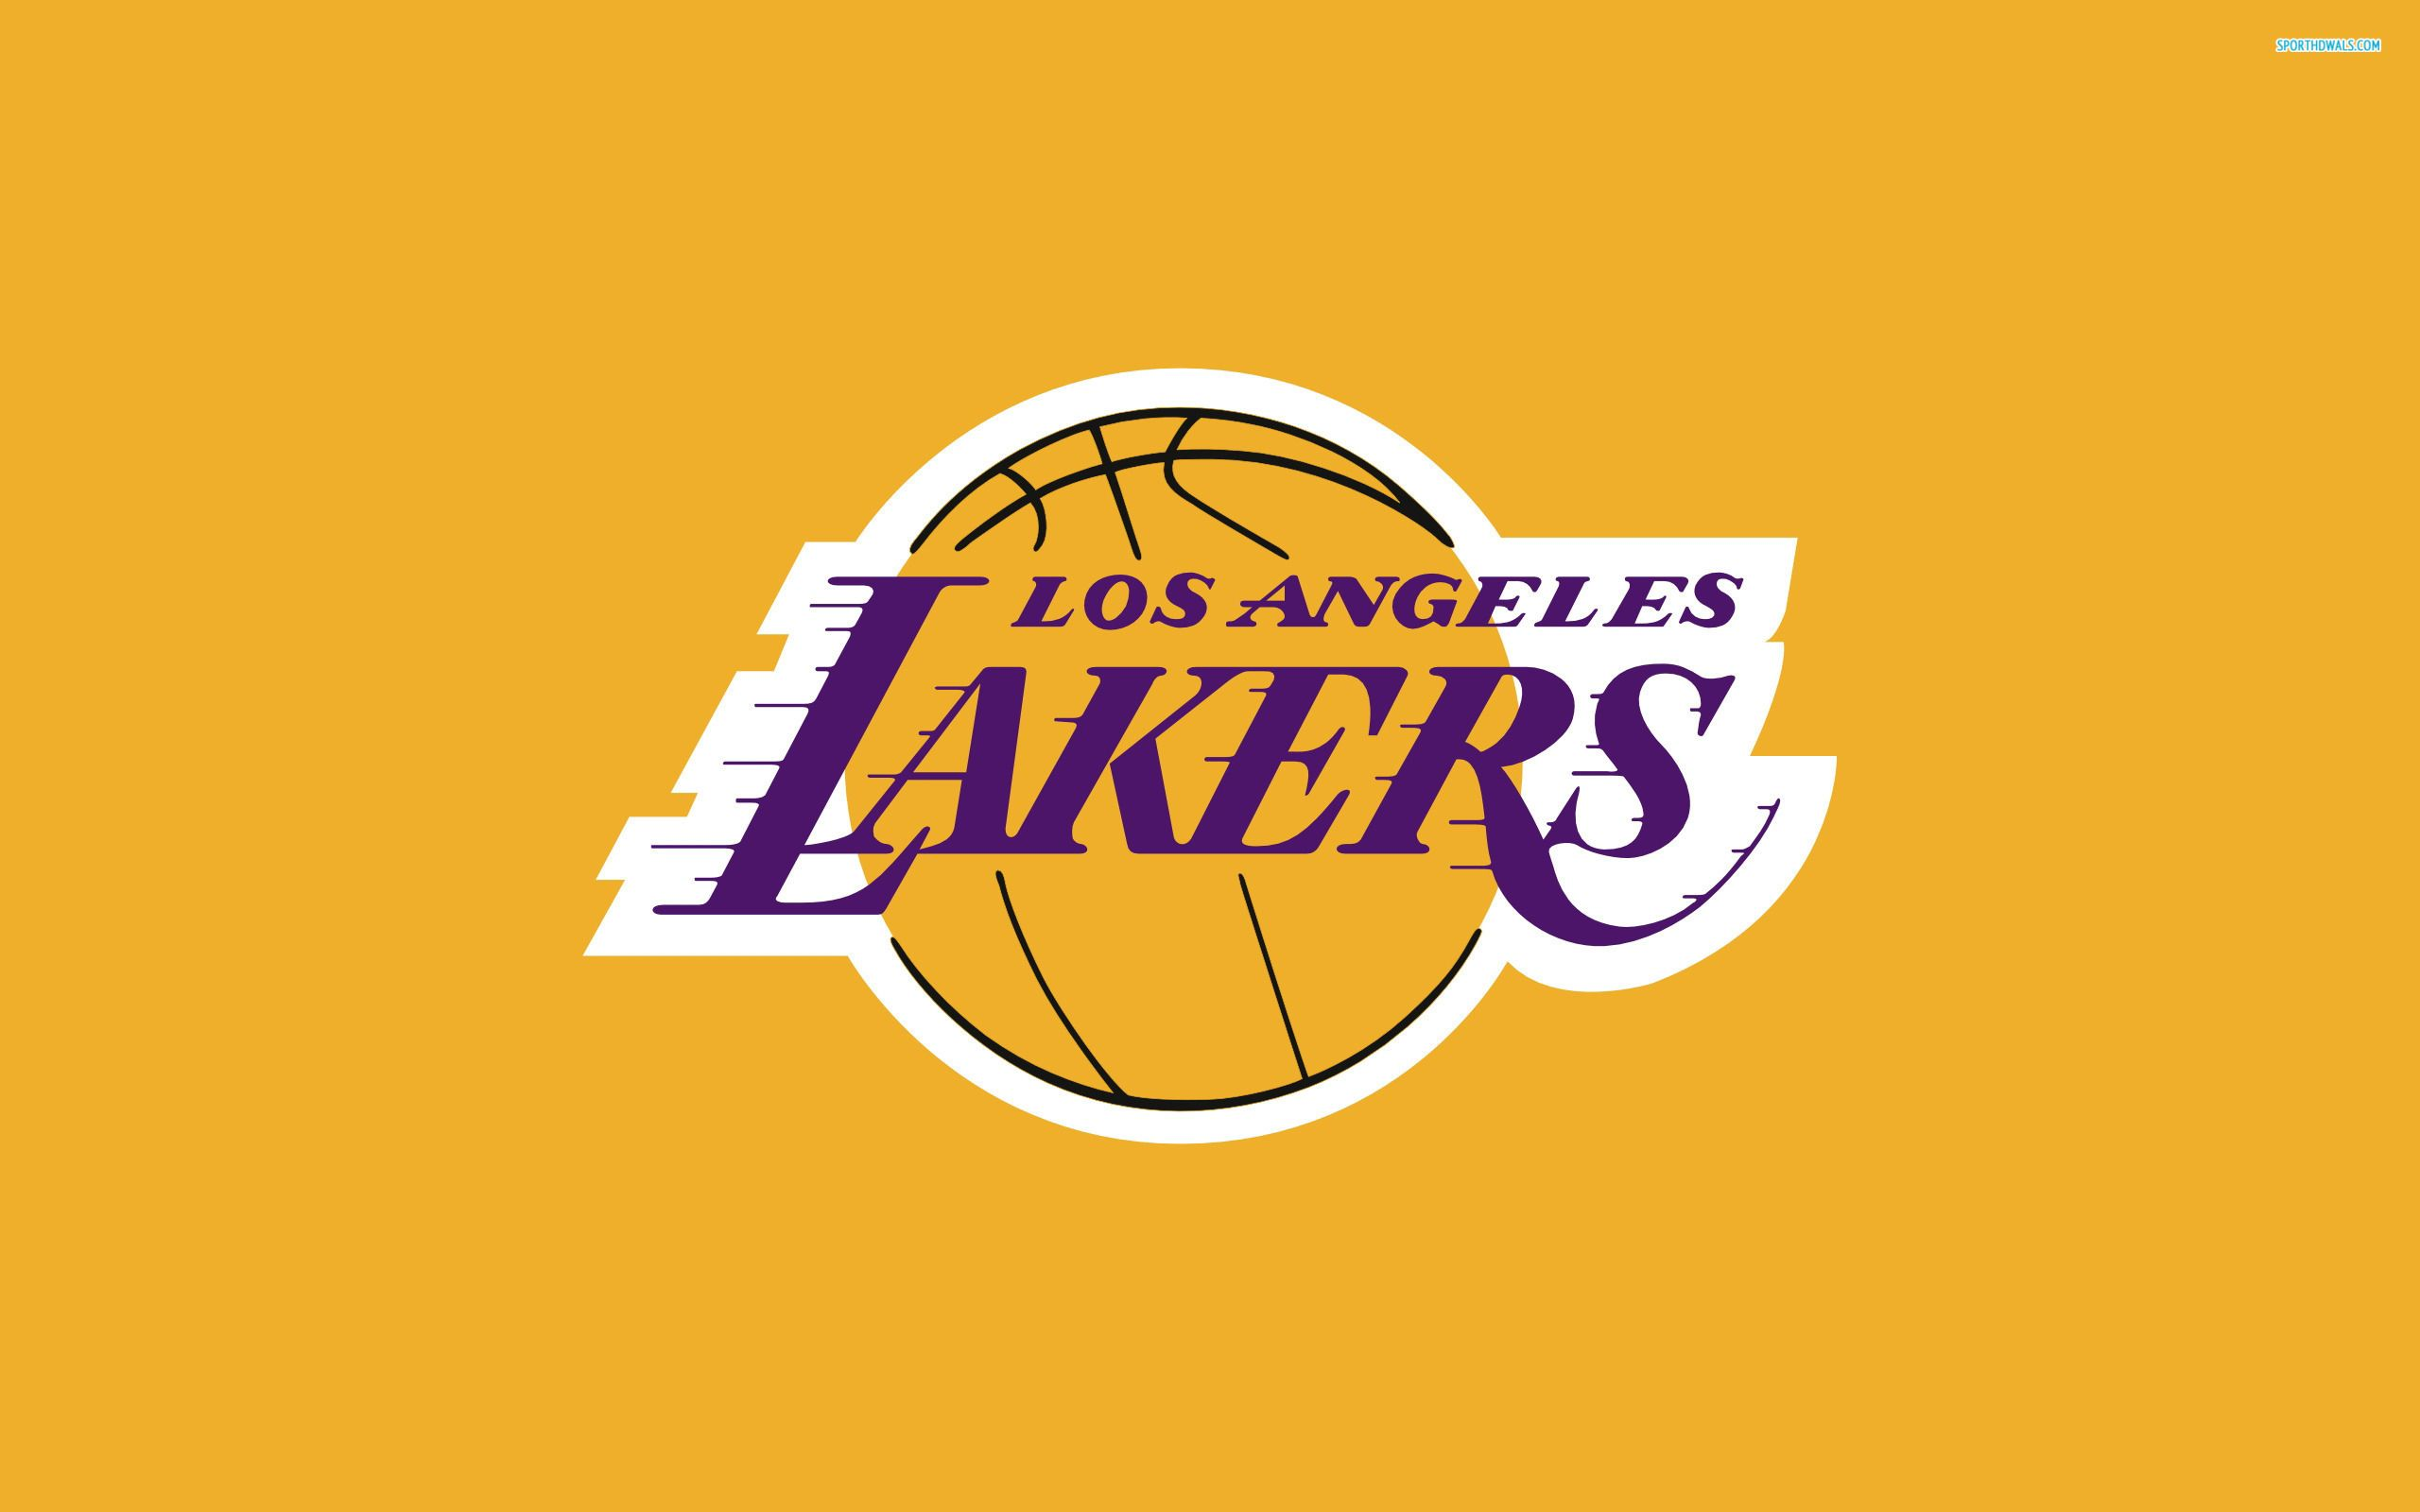 Los Angeles Lakers Wallpaper